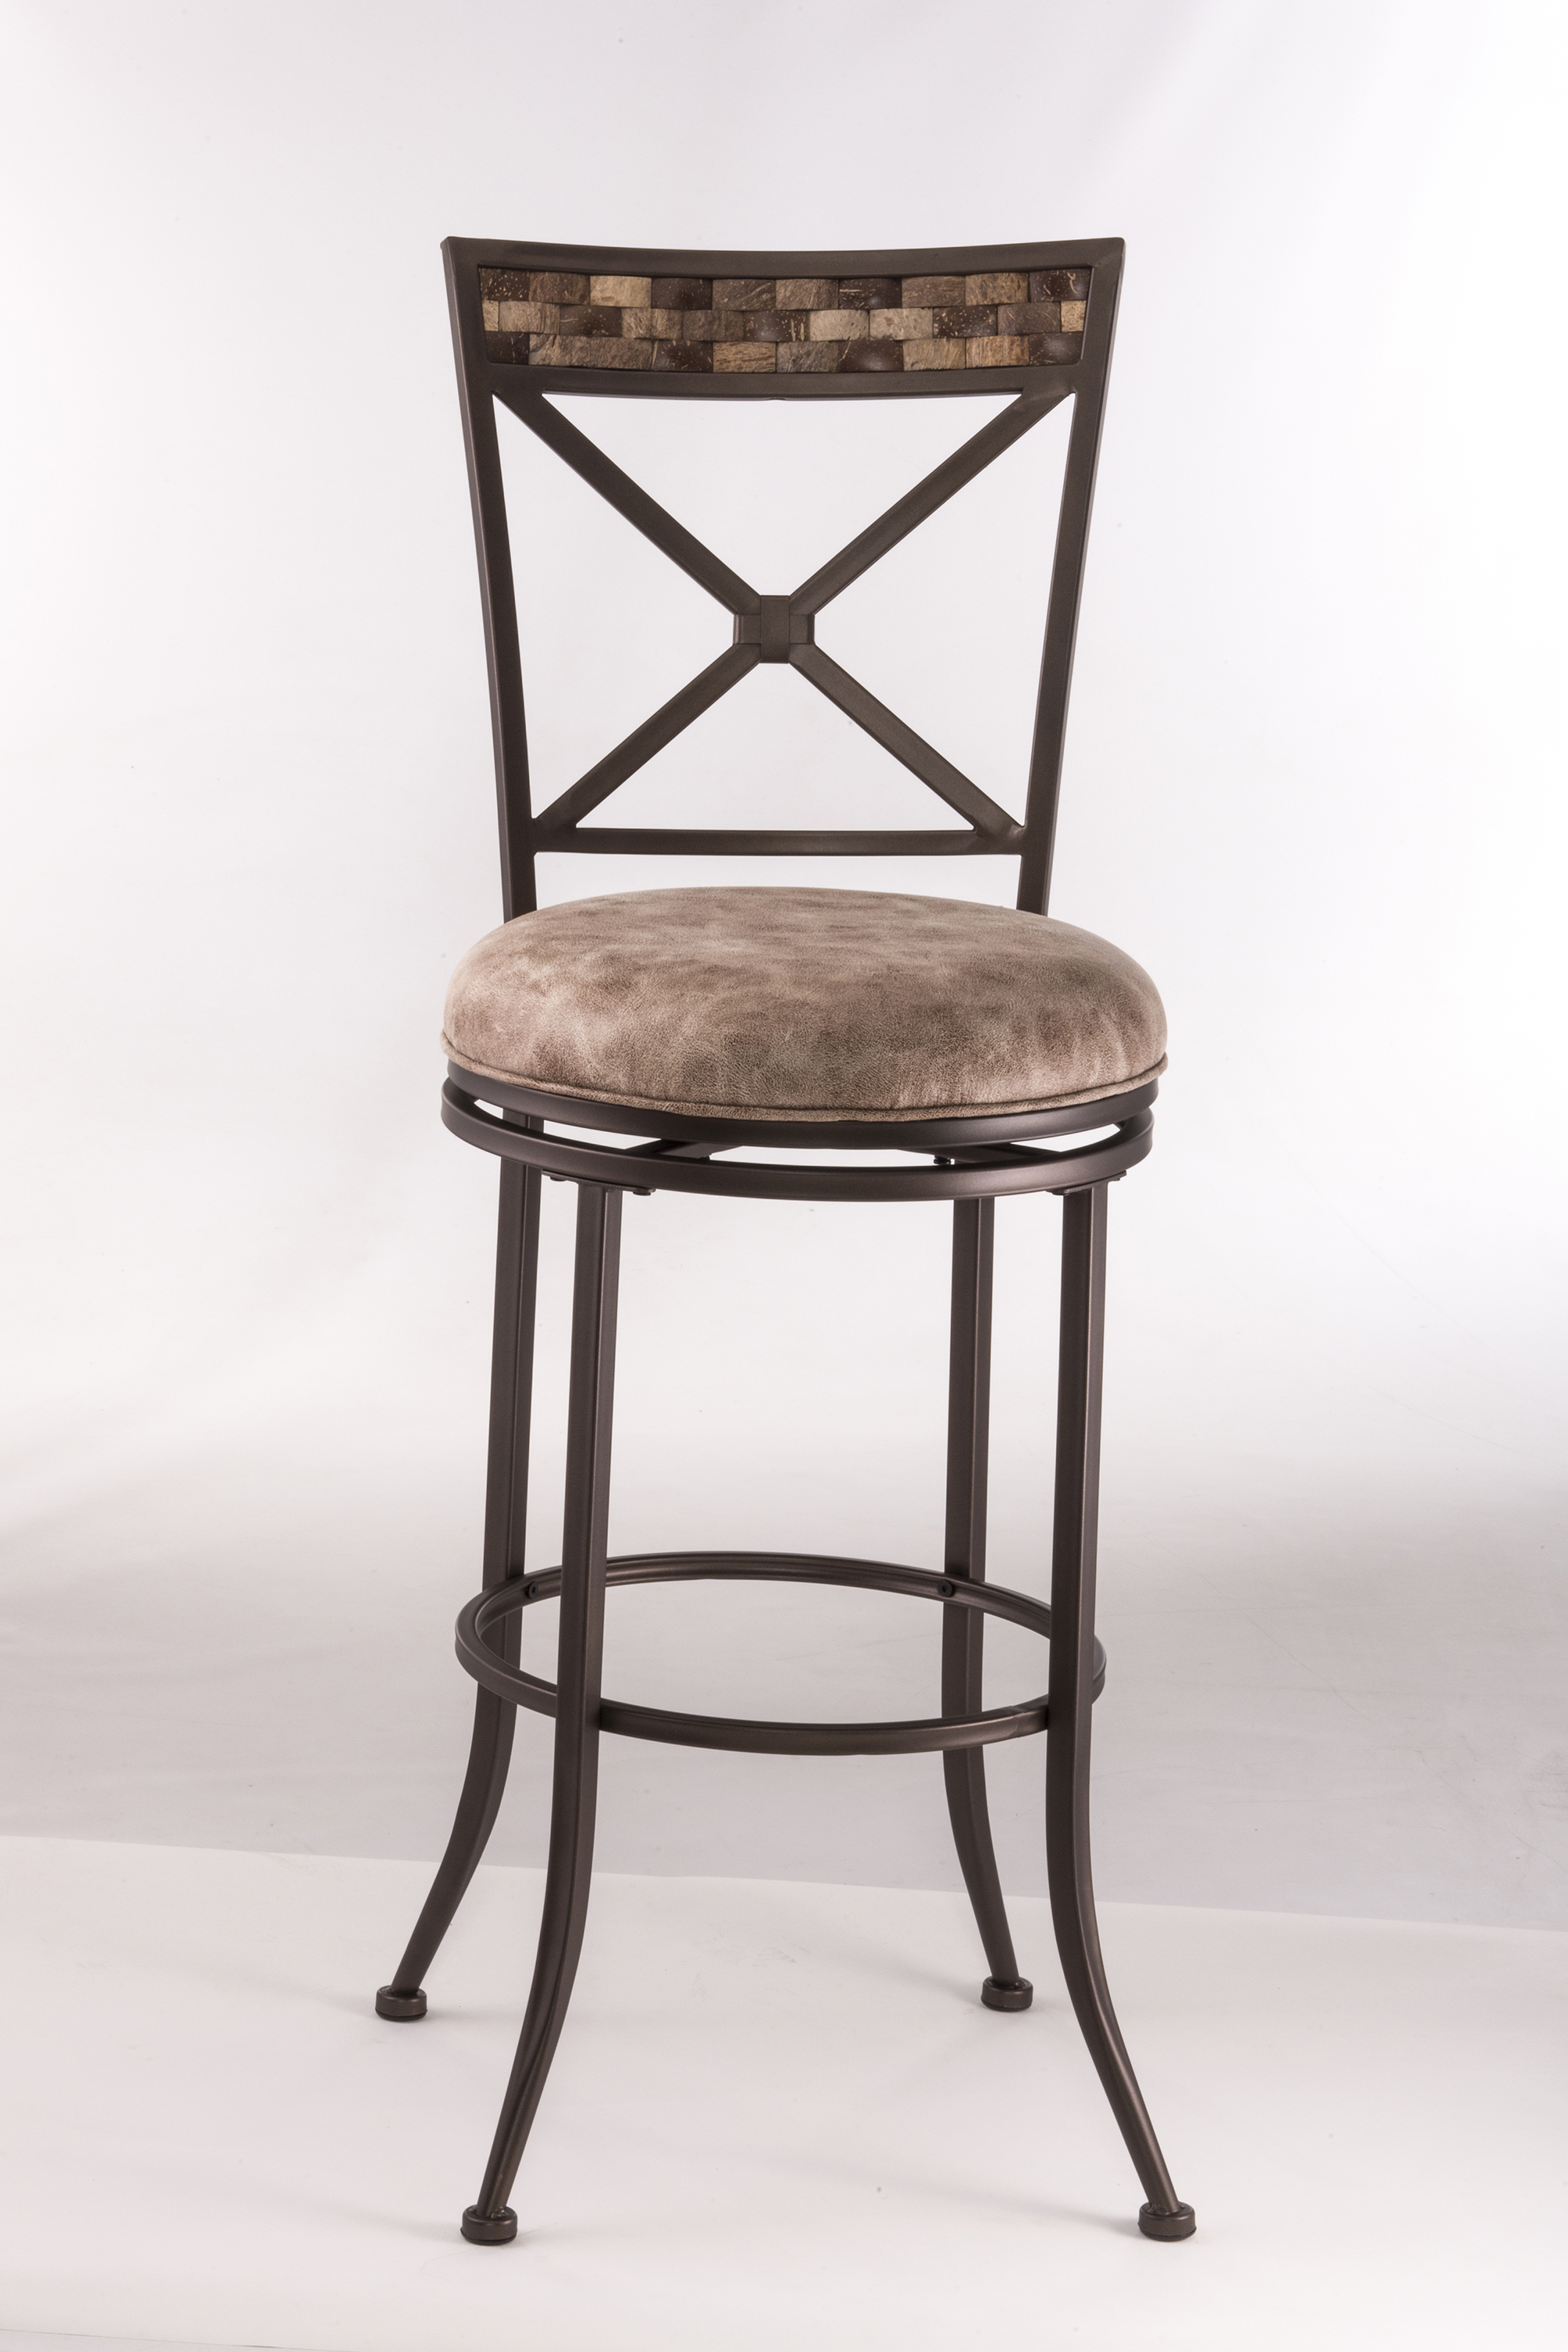 Hillsdale Metal Stools Swivel Bar Stool - Item Number: 5594-830